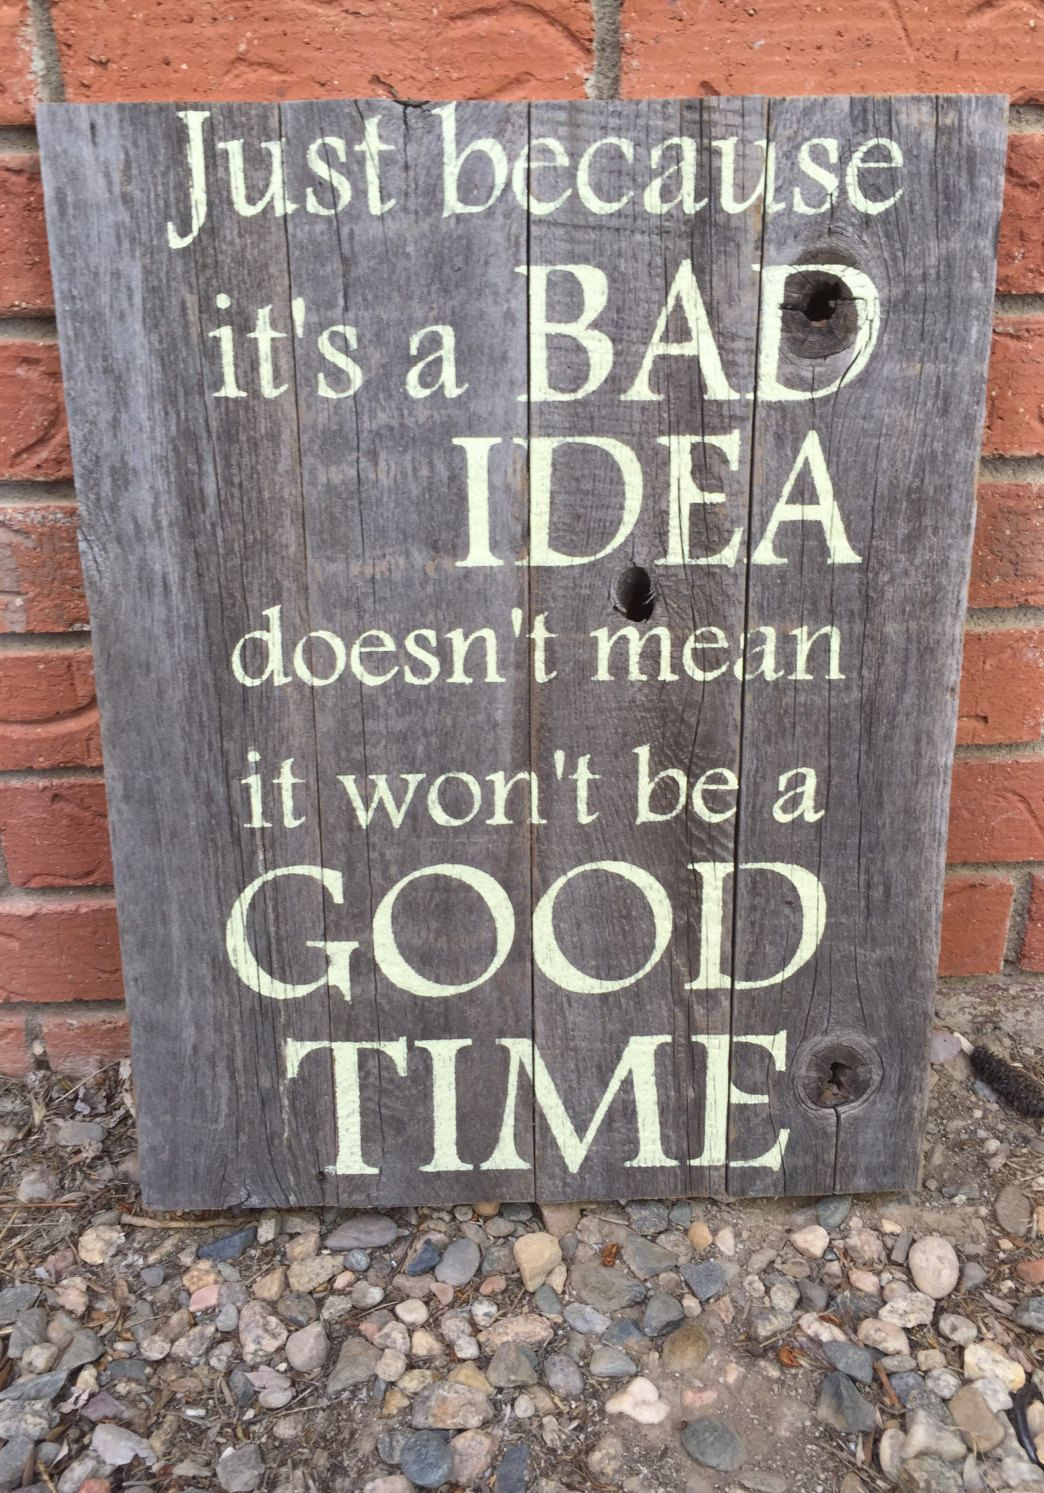 Just Because It 39 S A Bad Idea Doesn 39 T Mean It Won 39 T Be A Good Time Hand Painted Rustic Wall Sig Party Quotes Party Quotes Funny Party Time Quotes